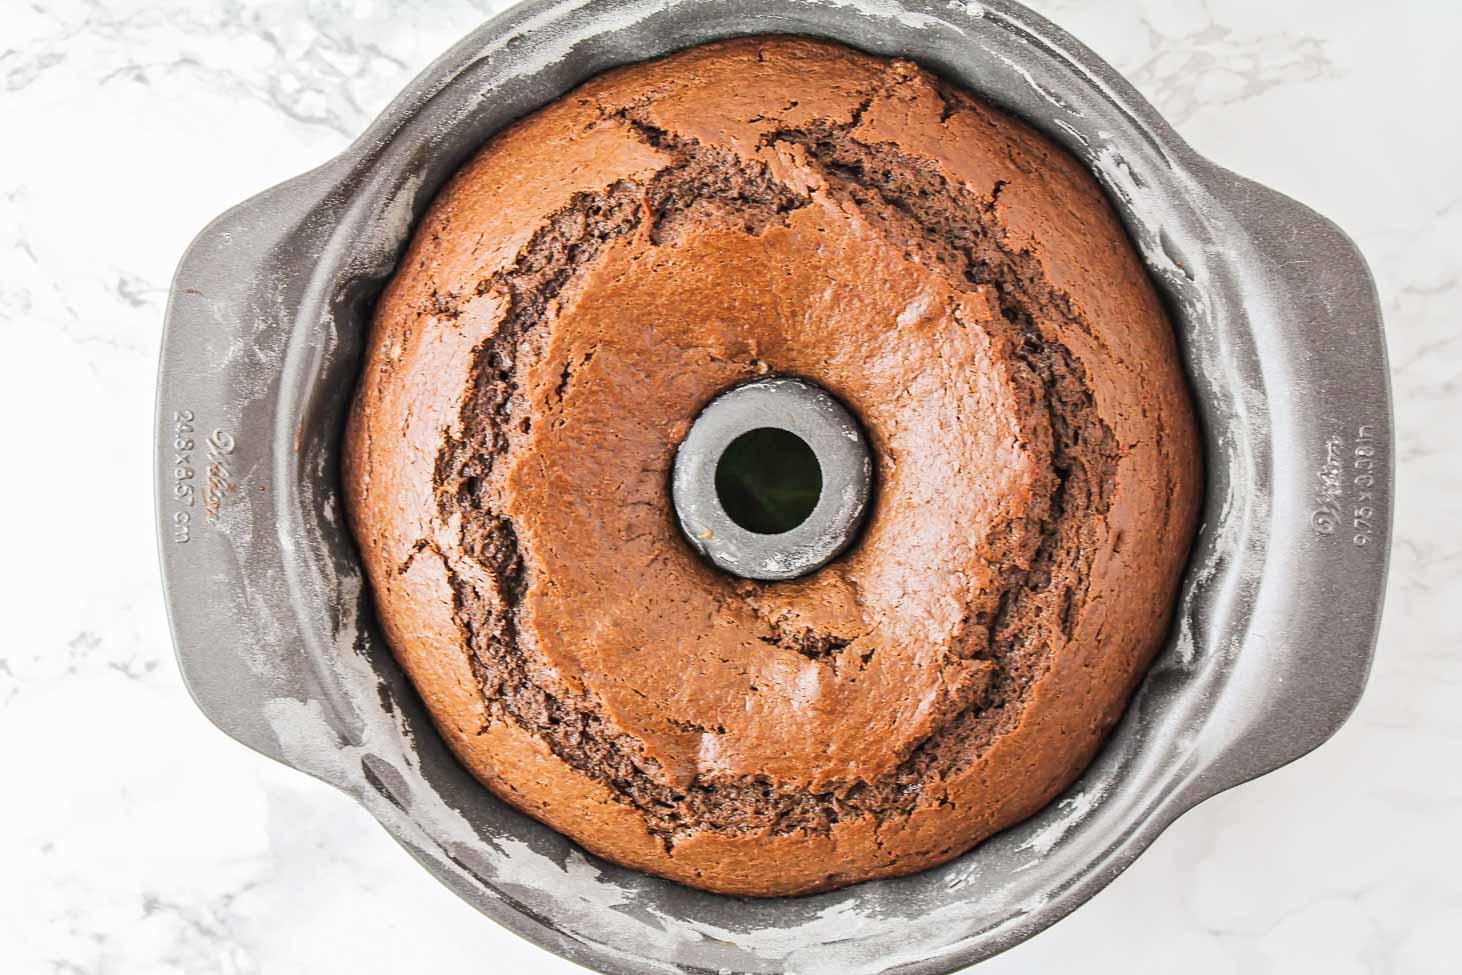 Freshly baked chocolate bundt cake